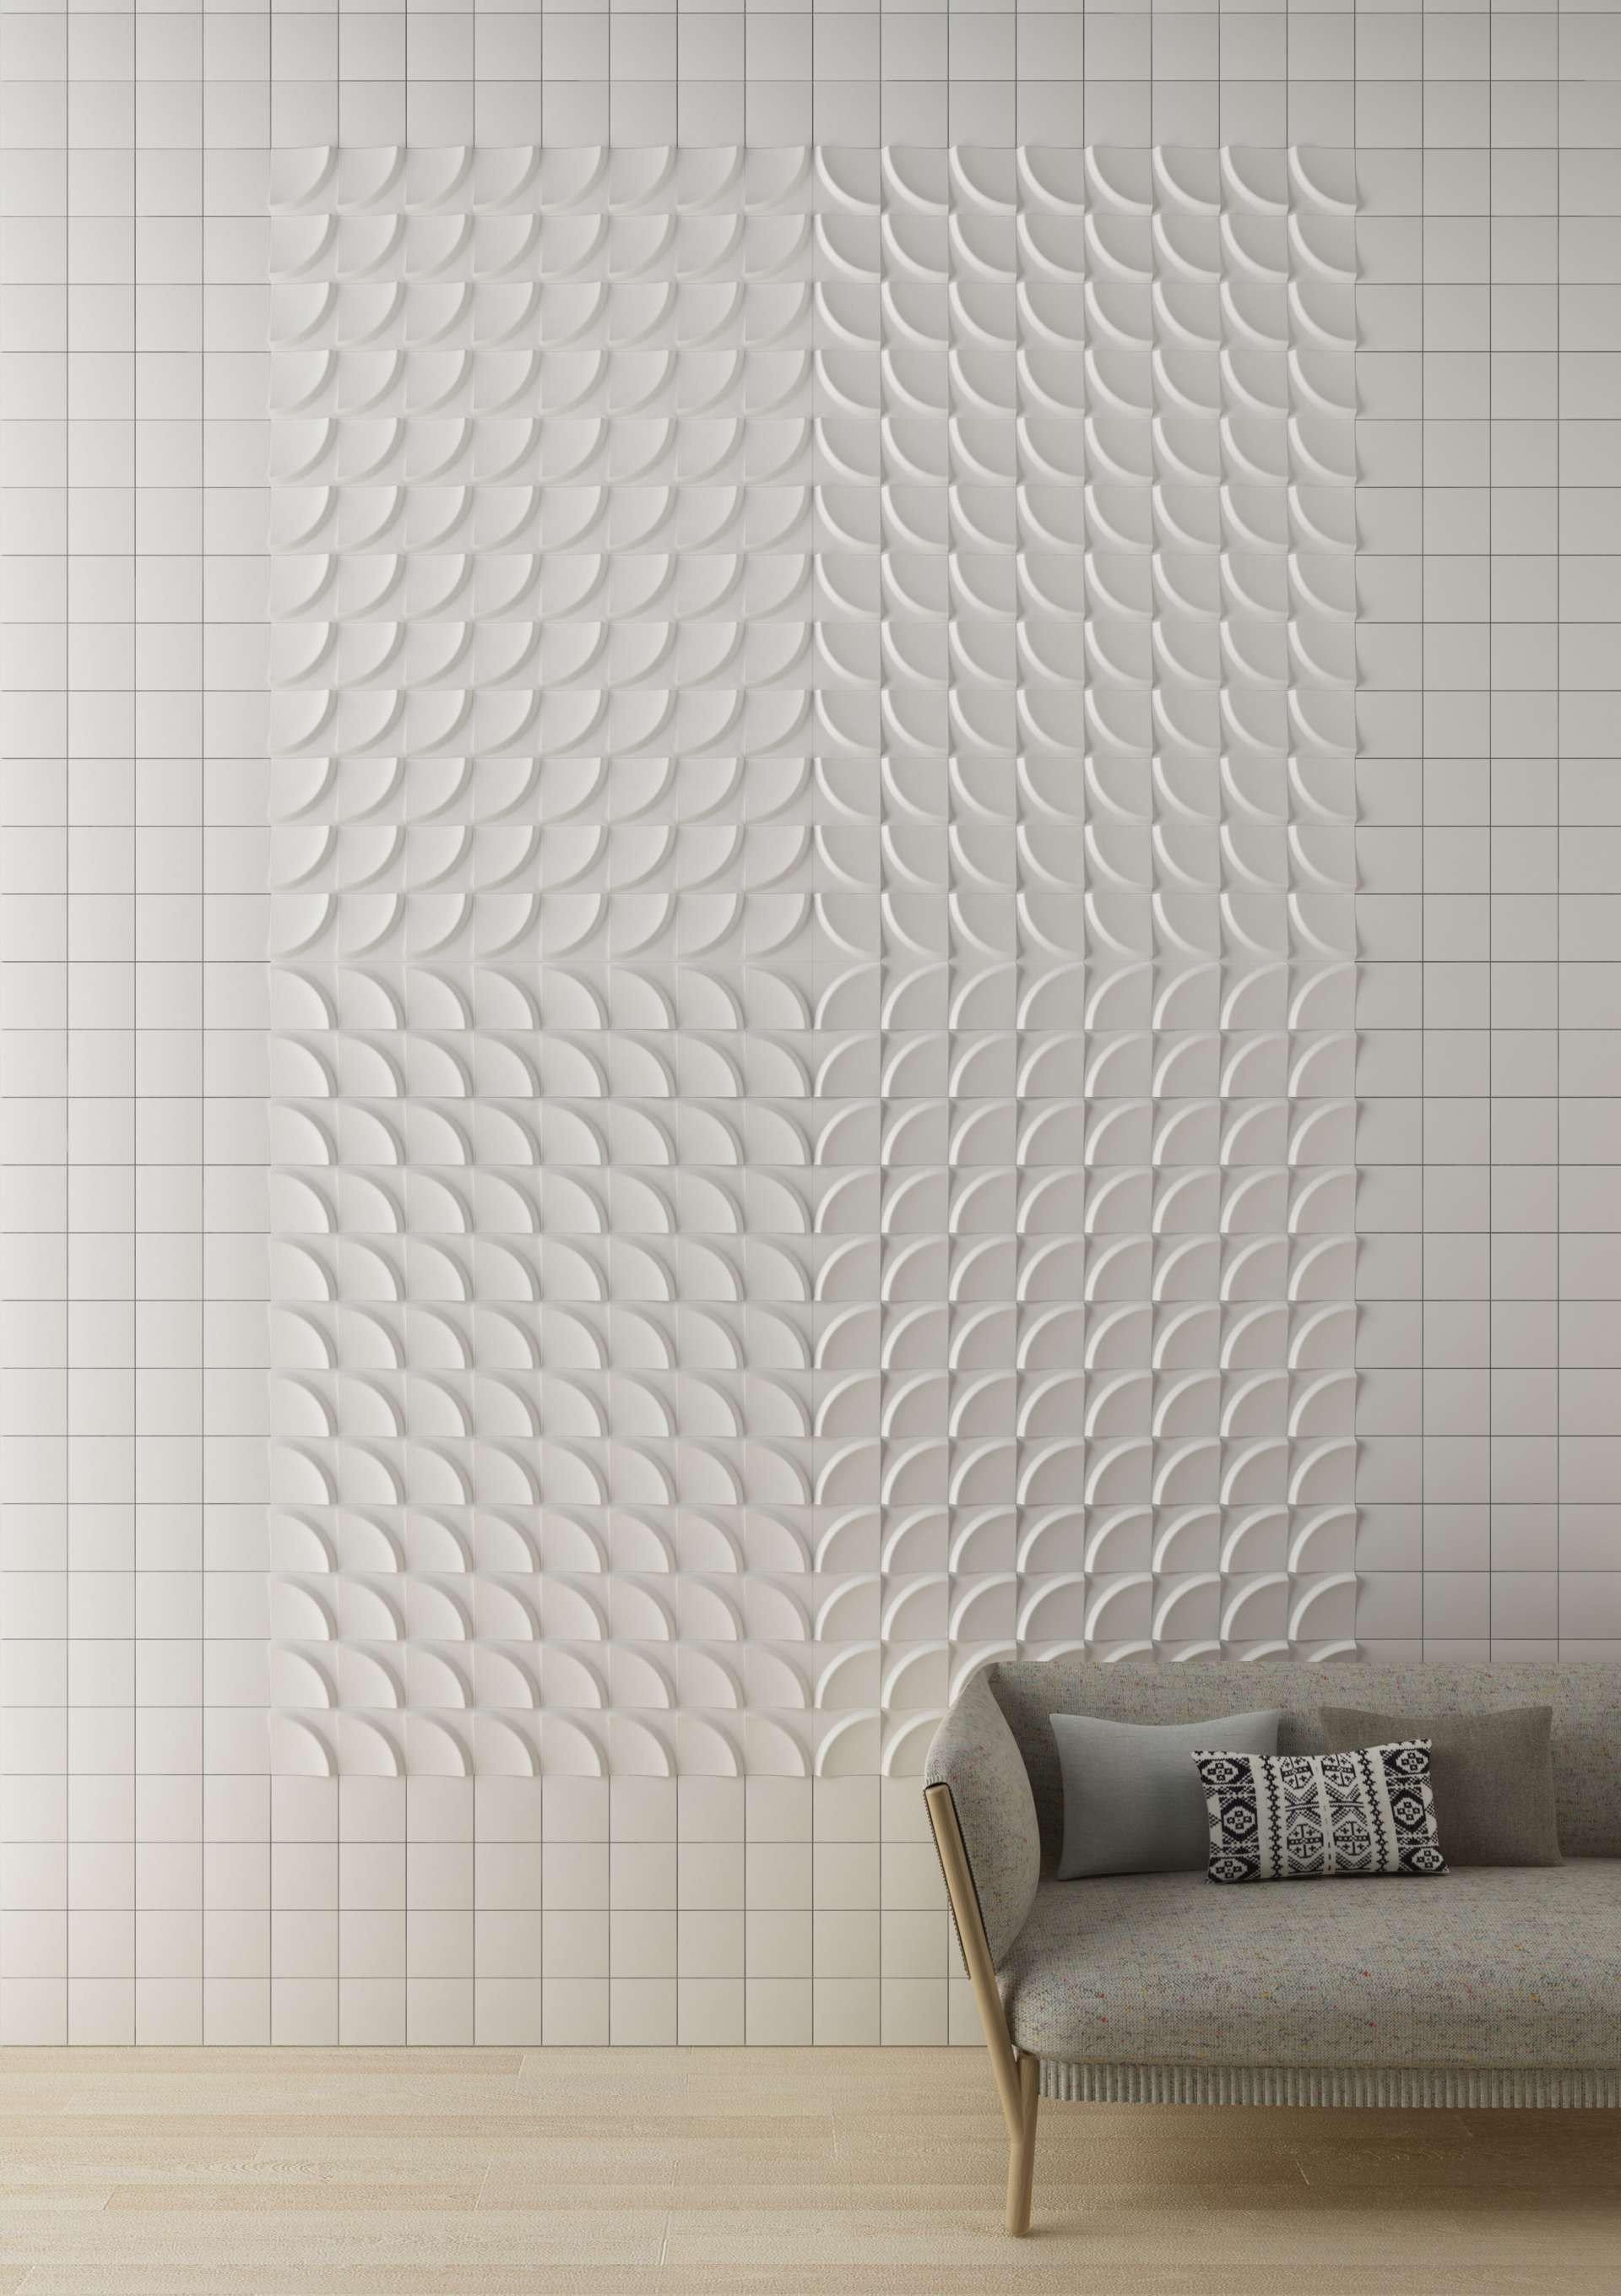 Ceramic Wall Tiles Bowl By Harmony Design Stone Designs